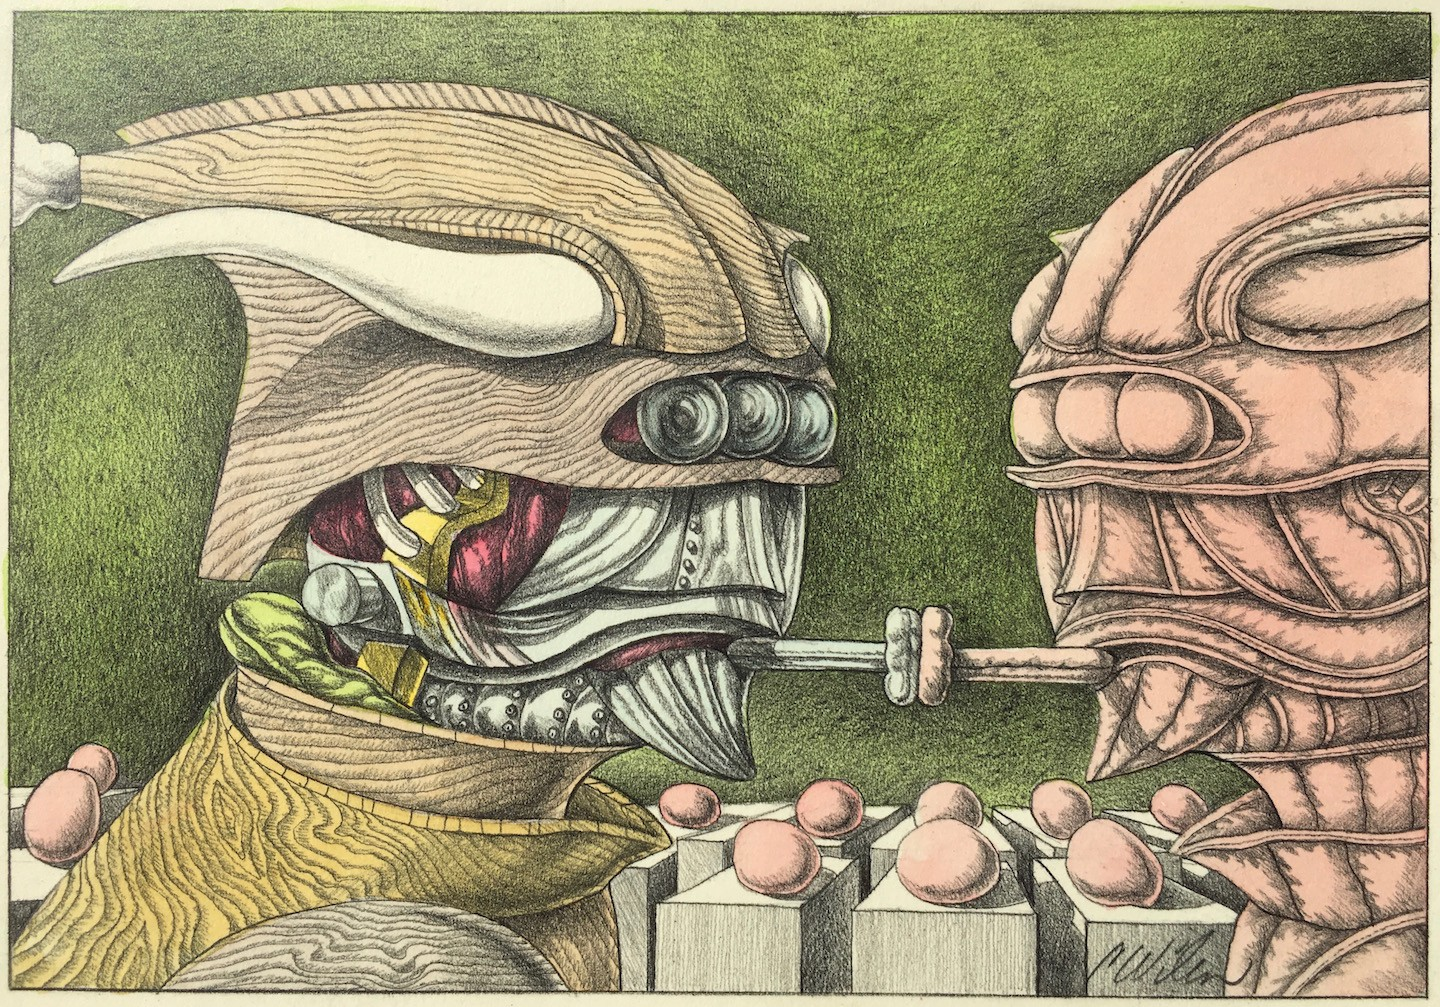 wilen_communication_5_38ths_x_7.5_graphite_and_watercolor.jpg